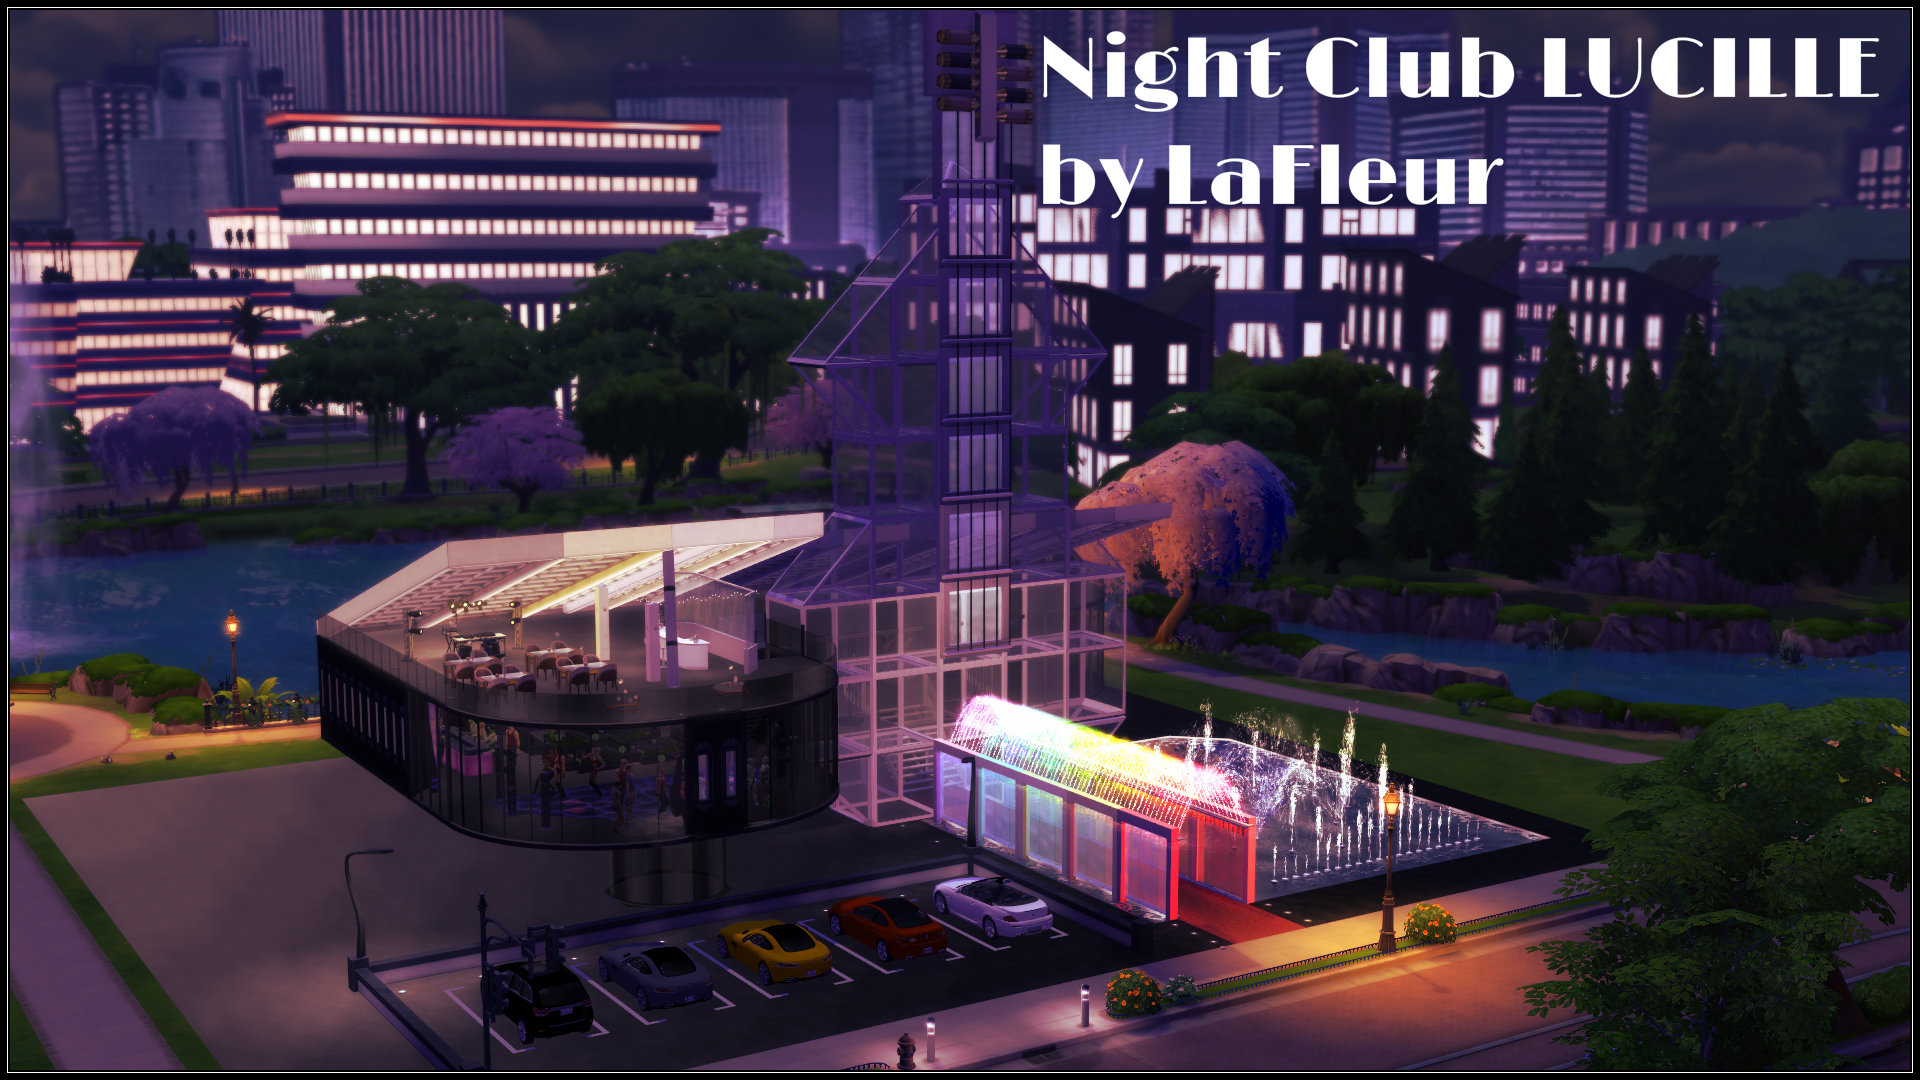 Night Club LUCILLE by Lafleur